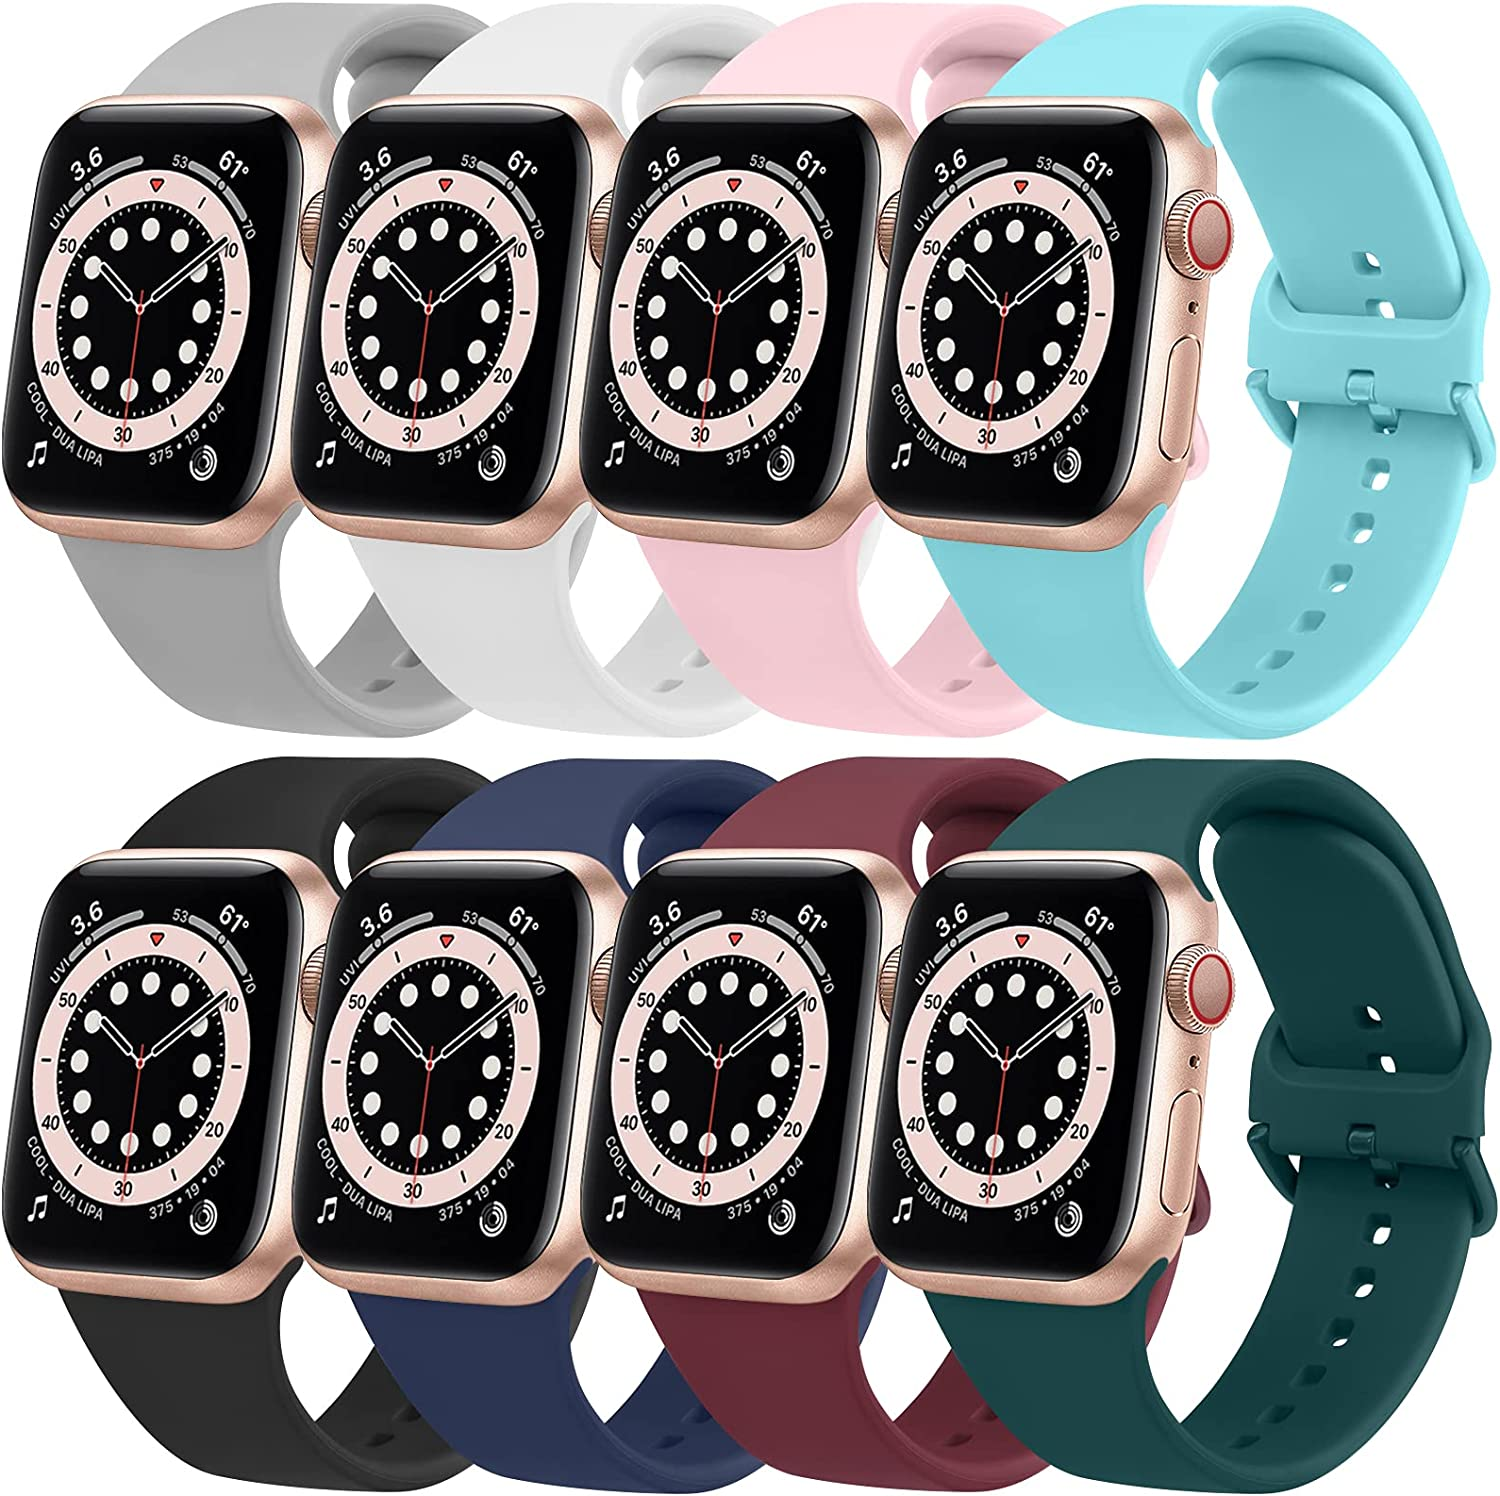 [8 Pack] Silicone Bands Compatible with Apple Watch Bands 44mm 42mm for Women Men, Soft Sport Bands Compatible with iWatch SE & Series 6 5 4 3 2 1